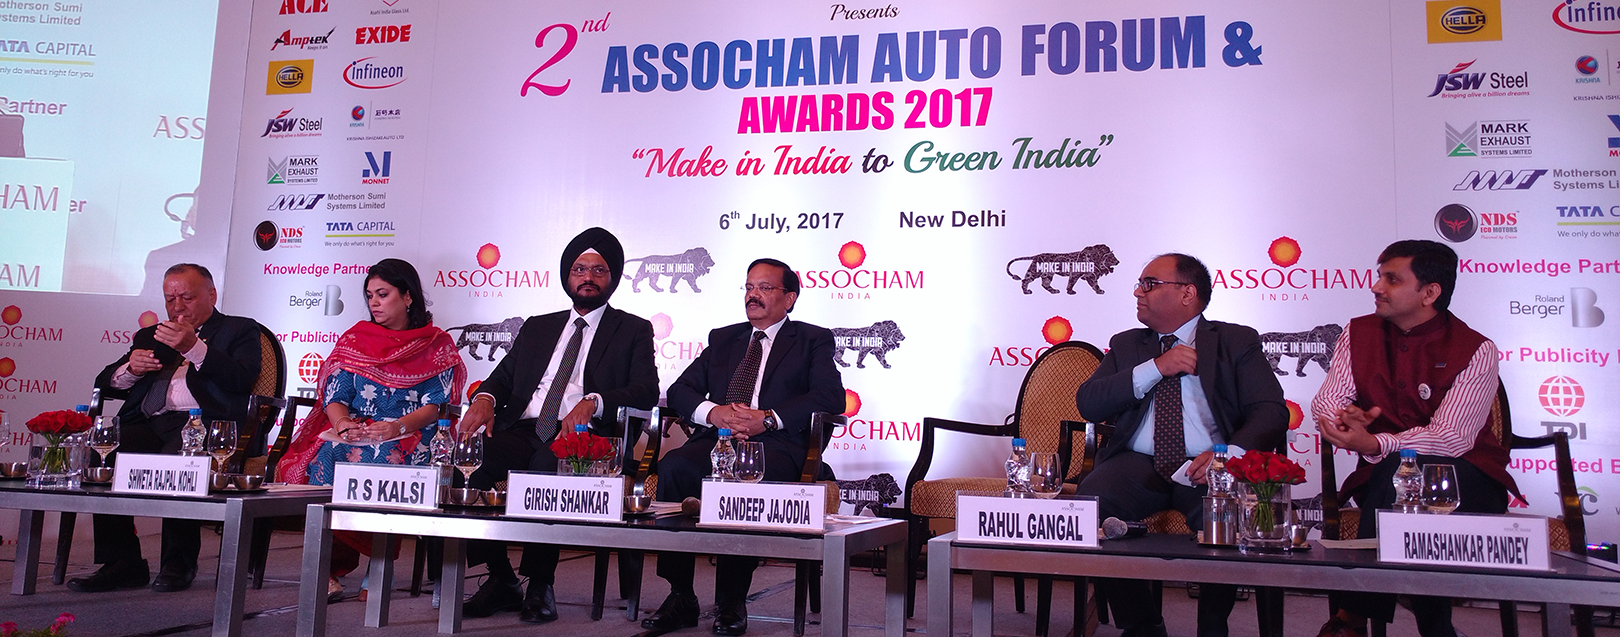 'Indian auto industry to grow more than 3.5 times by 2026'